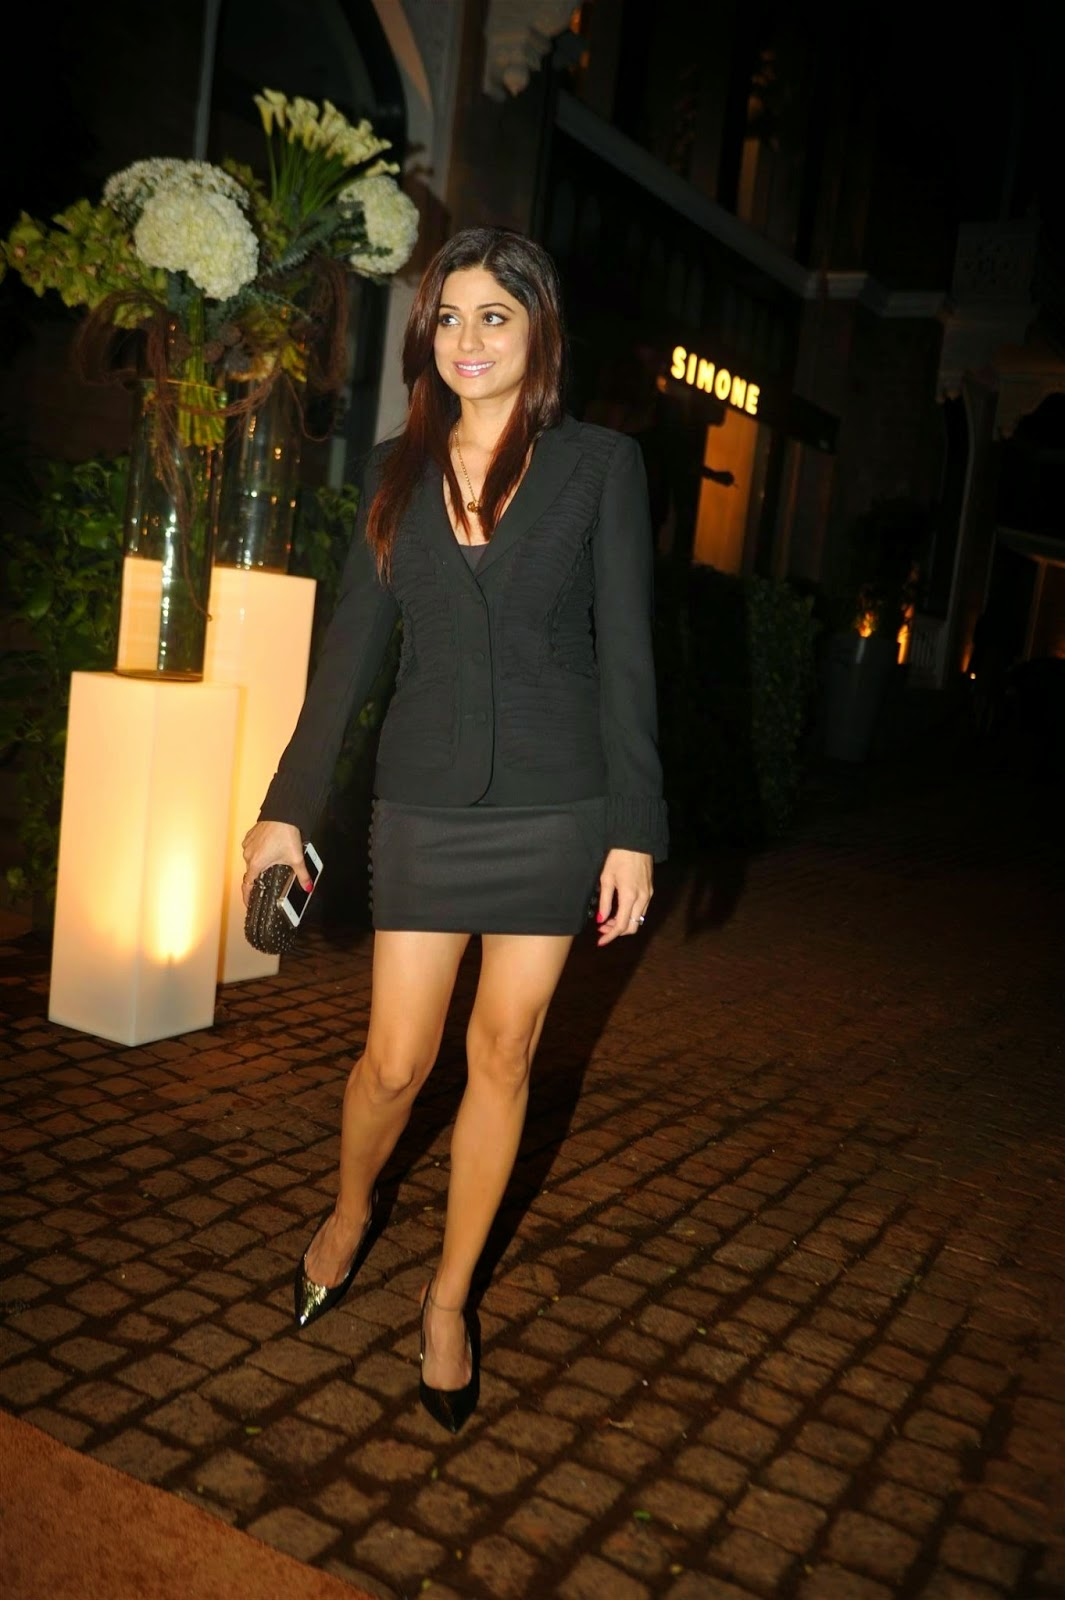 shamita shetty hot spicy legs hd pics